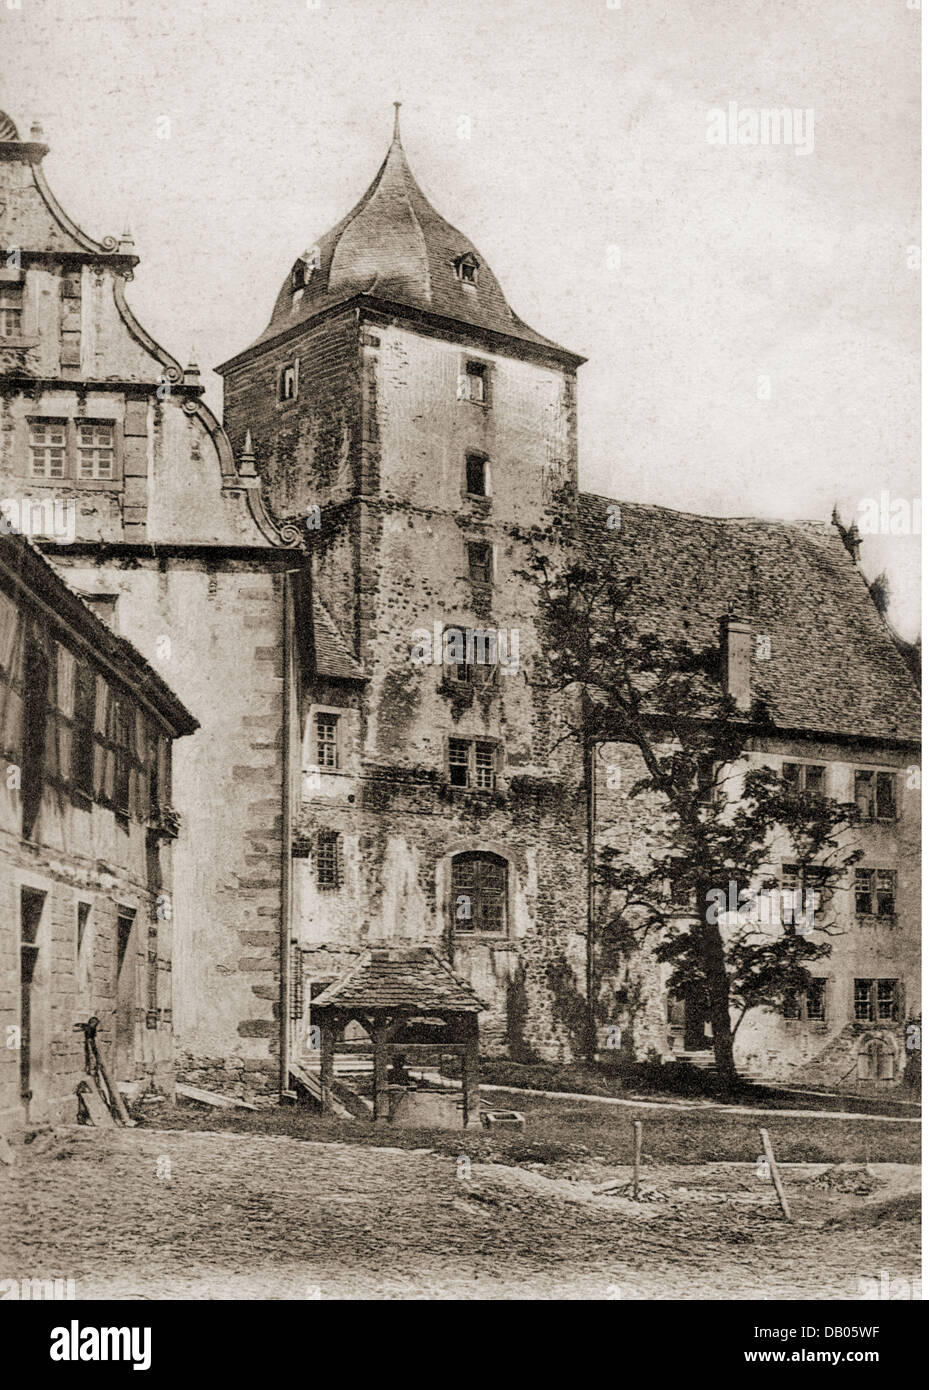 geography / travel, Germany, castles, Schlitz Castle, exterior view, front castle, picture postcard, postmarked - Stock Image